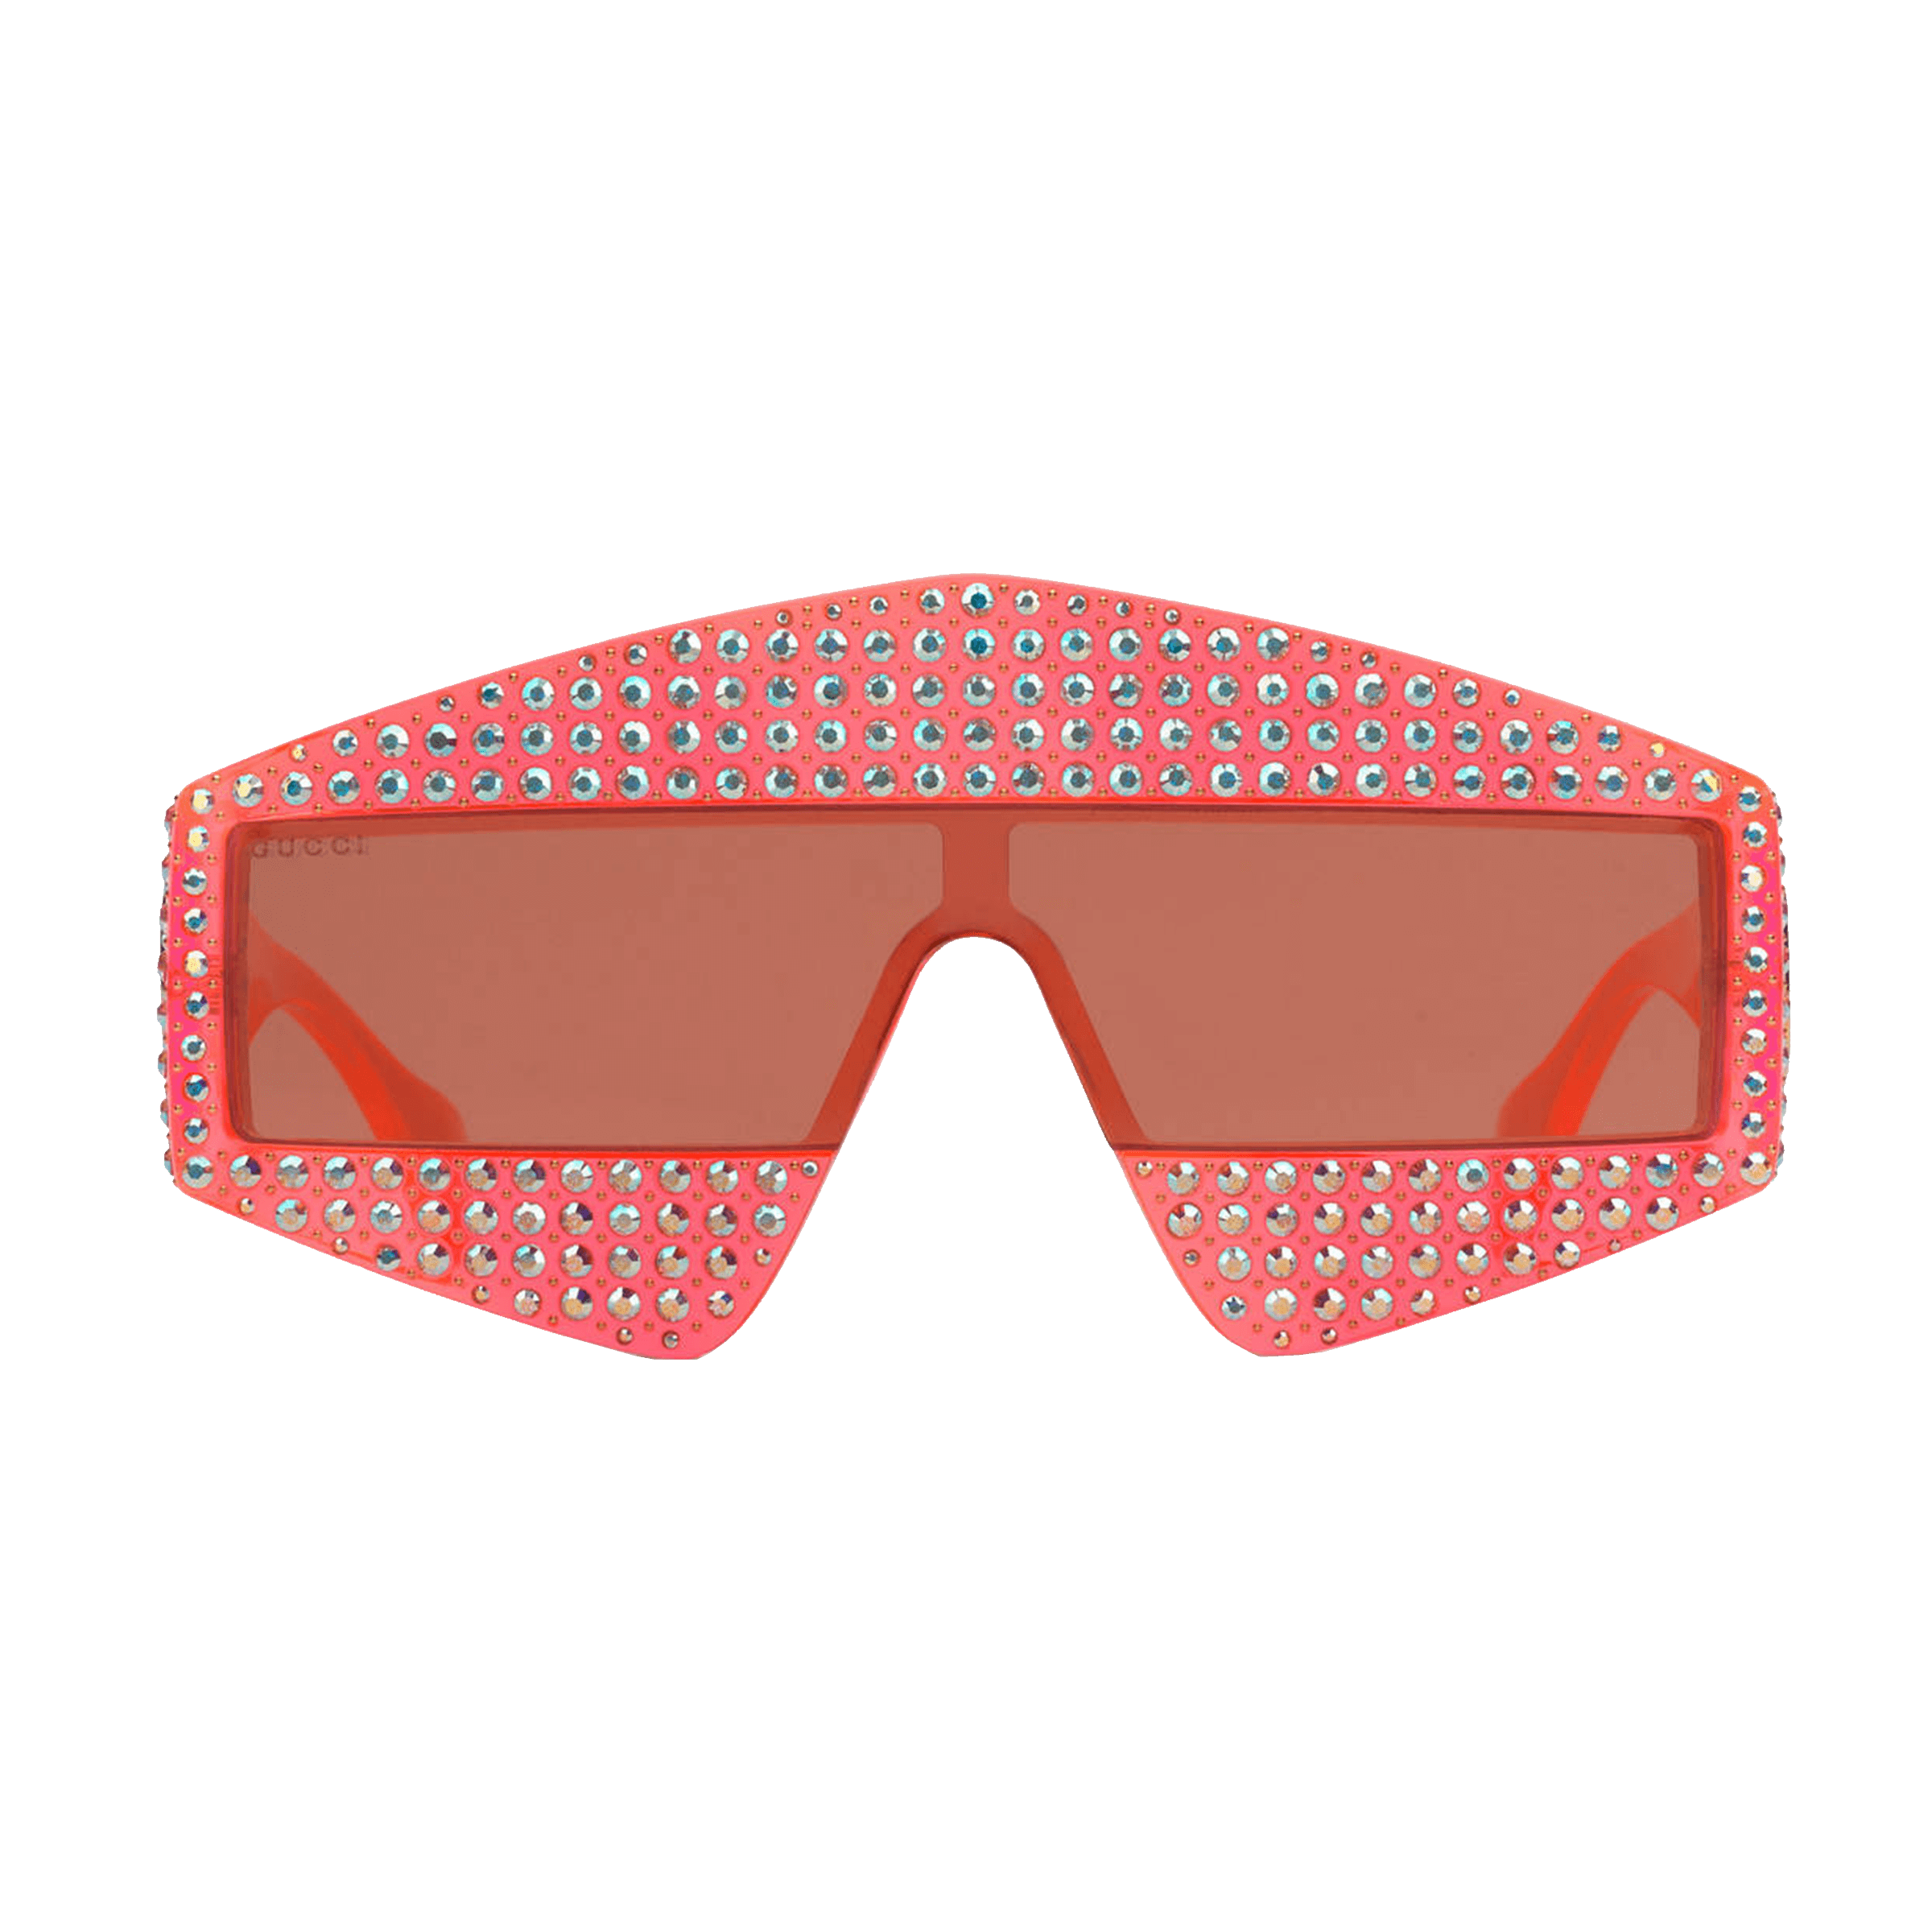 If had superpowers they. Clipart sunglasses spectacle frame